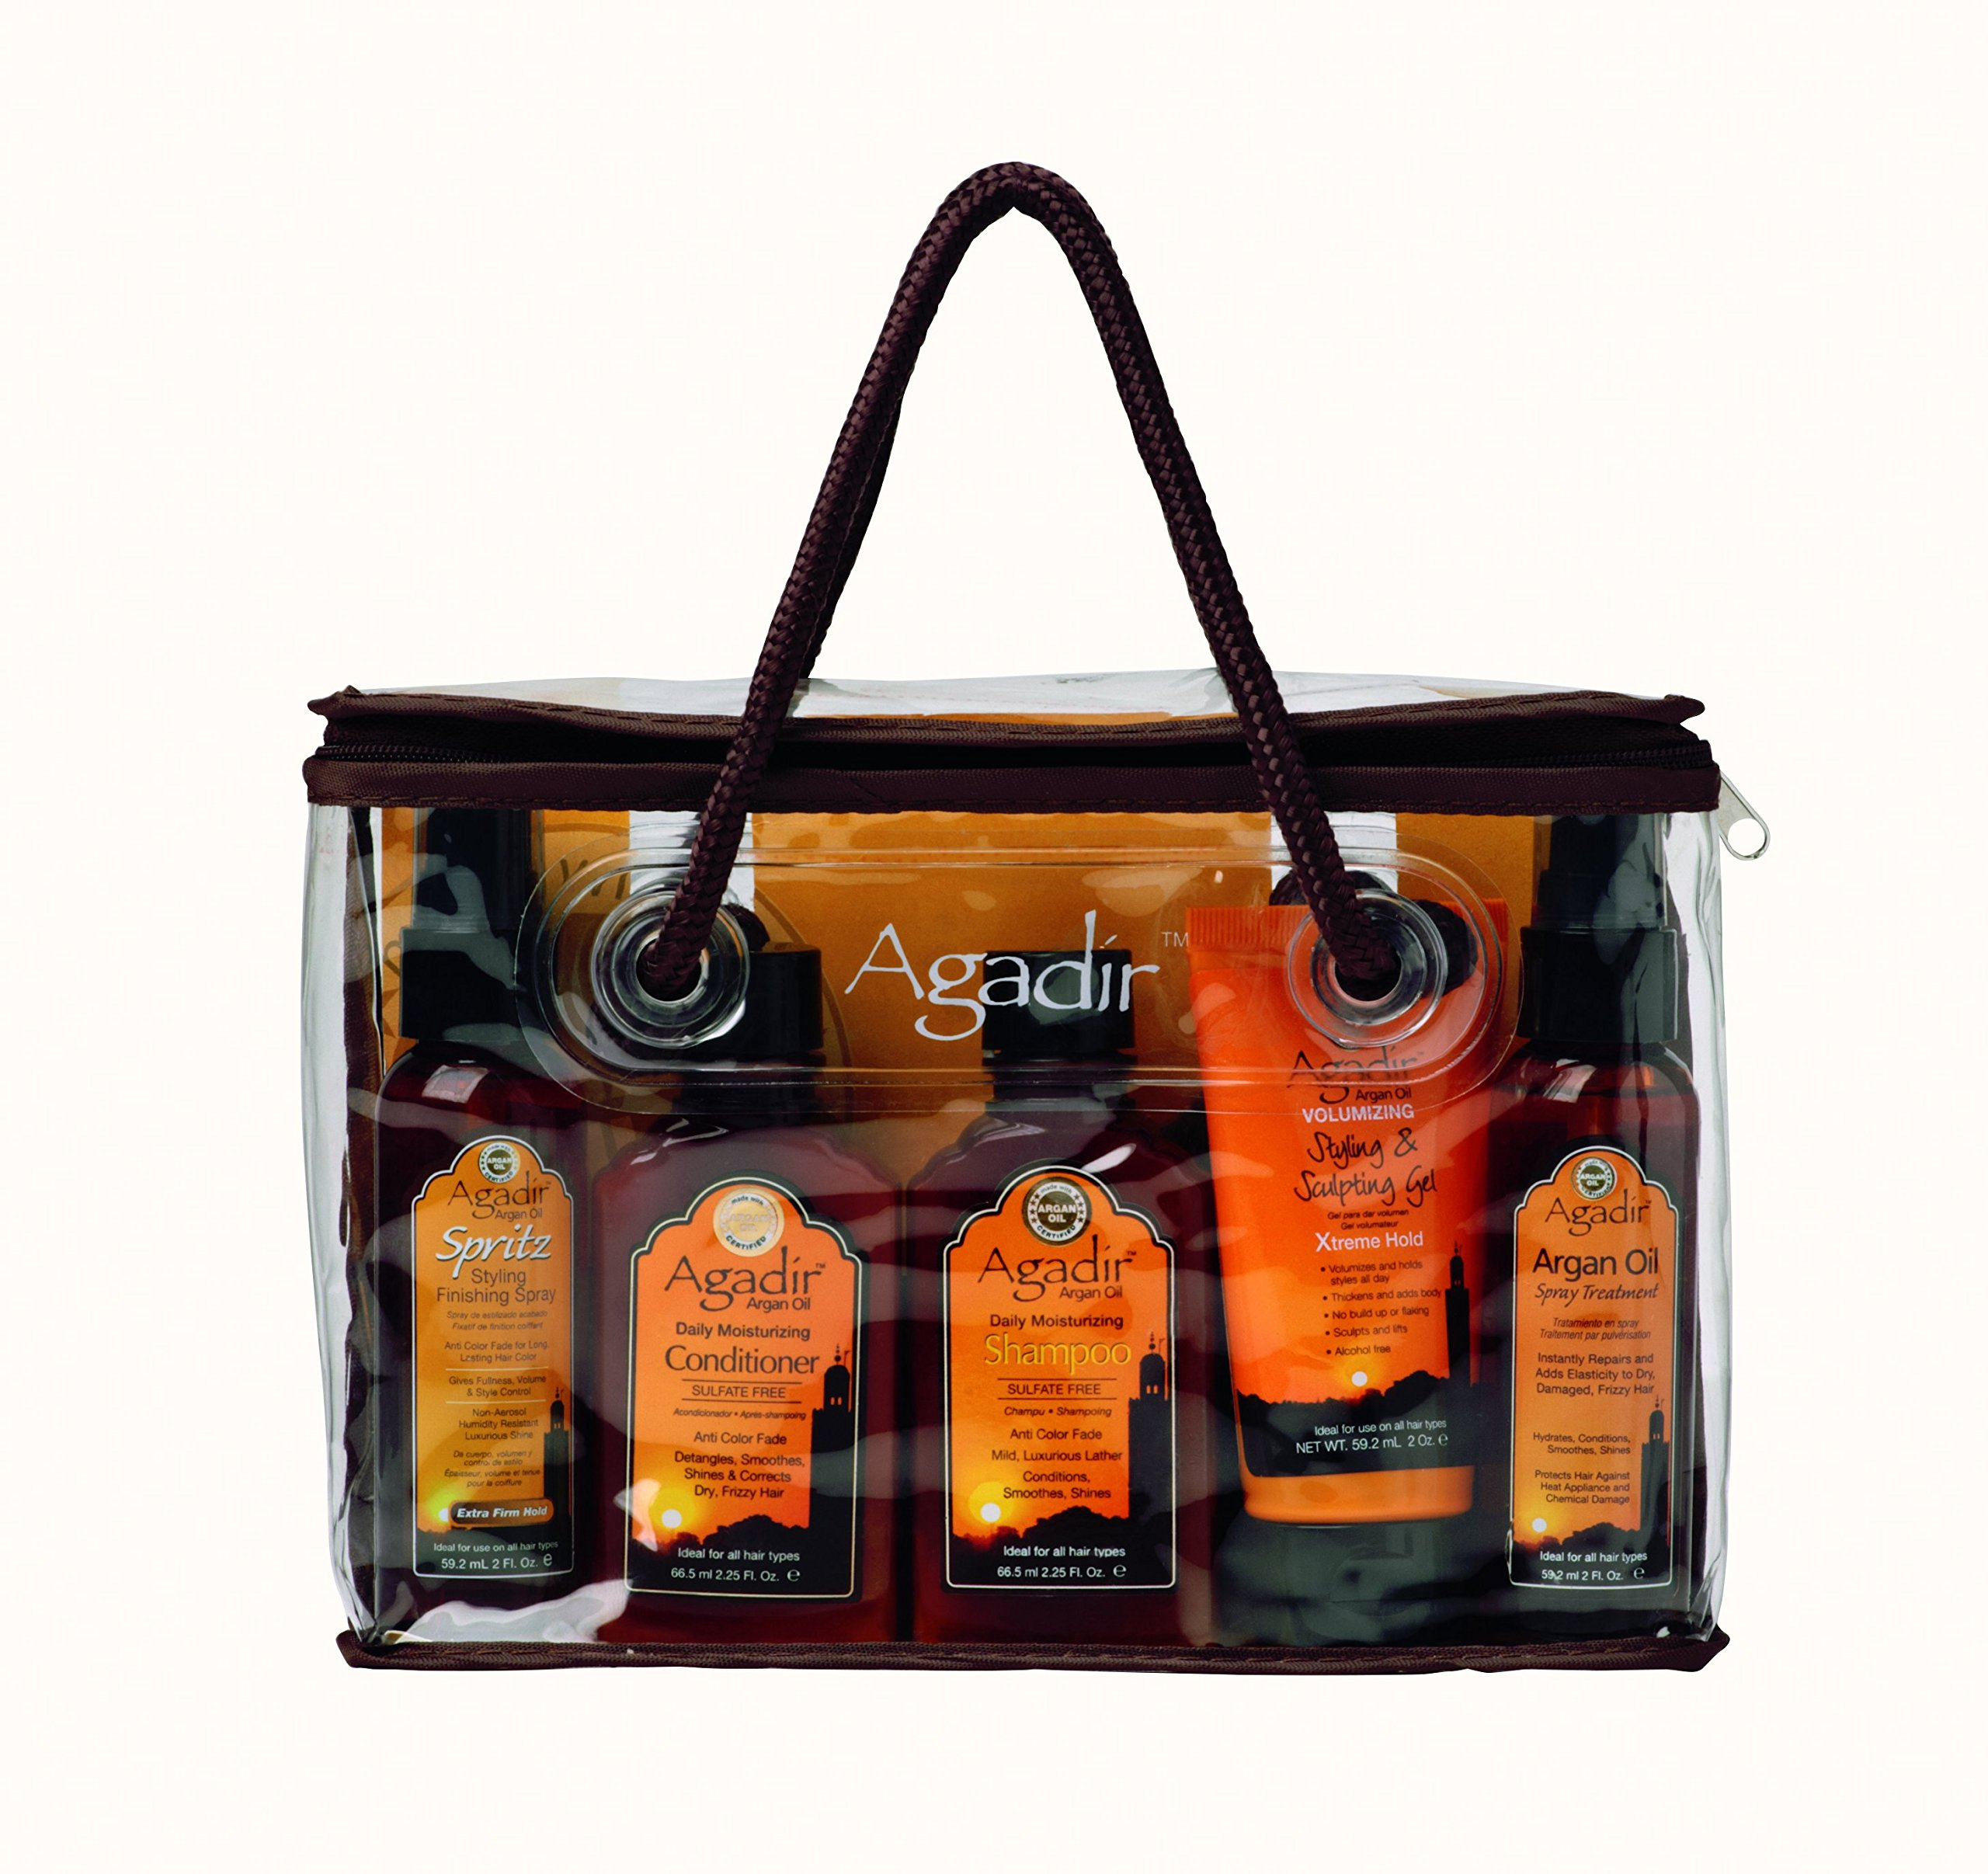 Agadir Argan Oil Travel Pack by Agadir Argan Oil